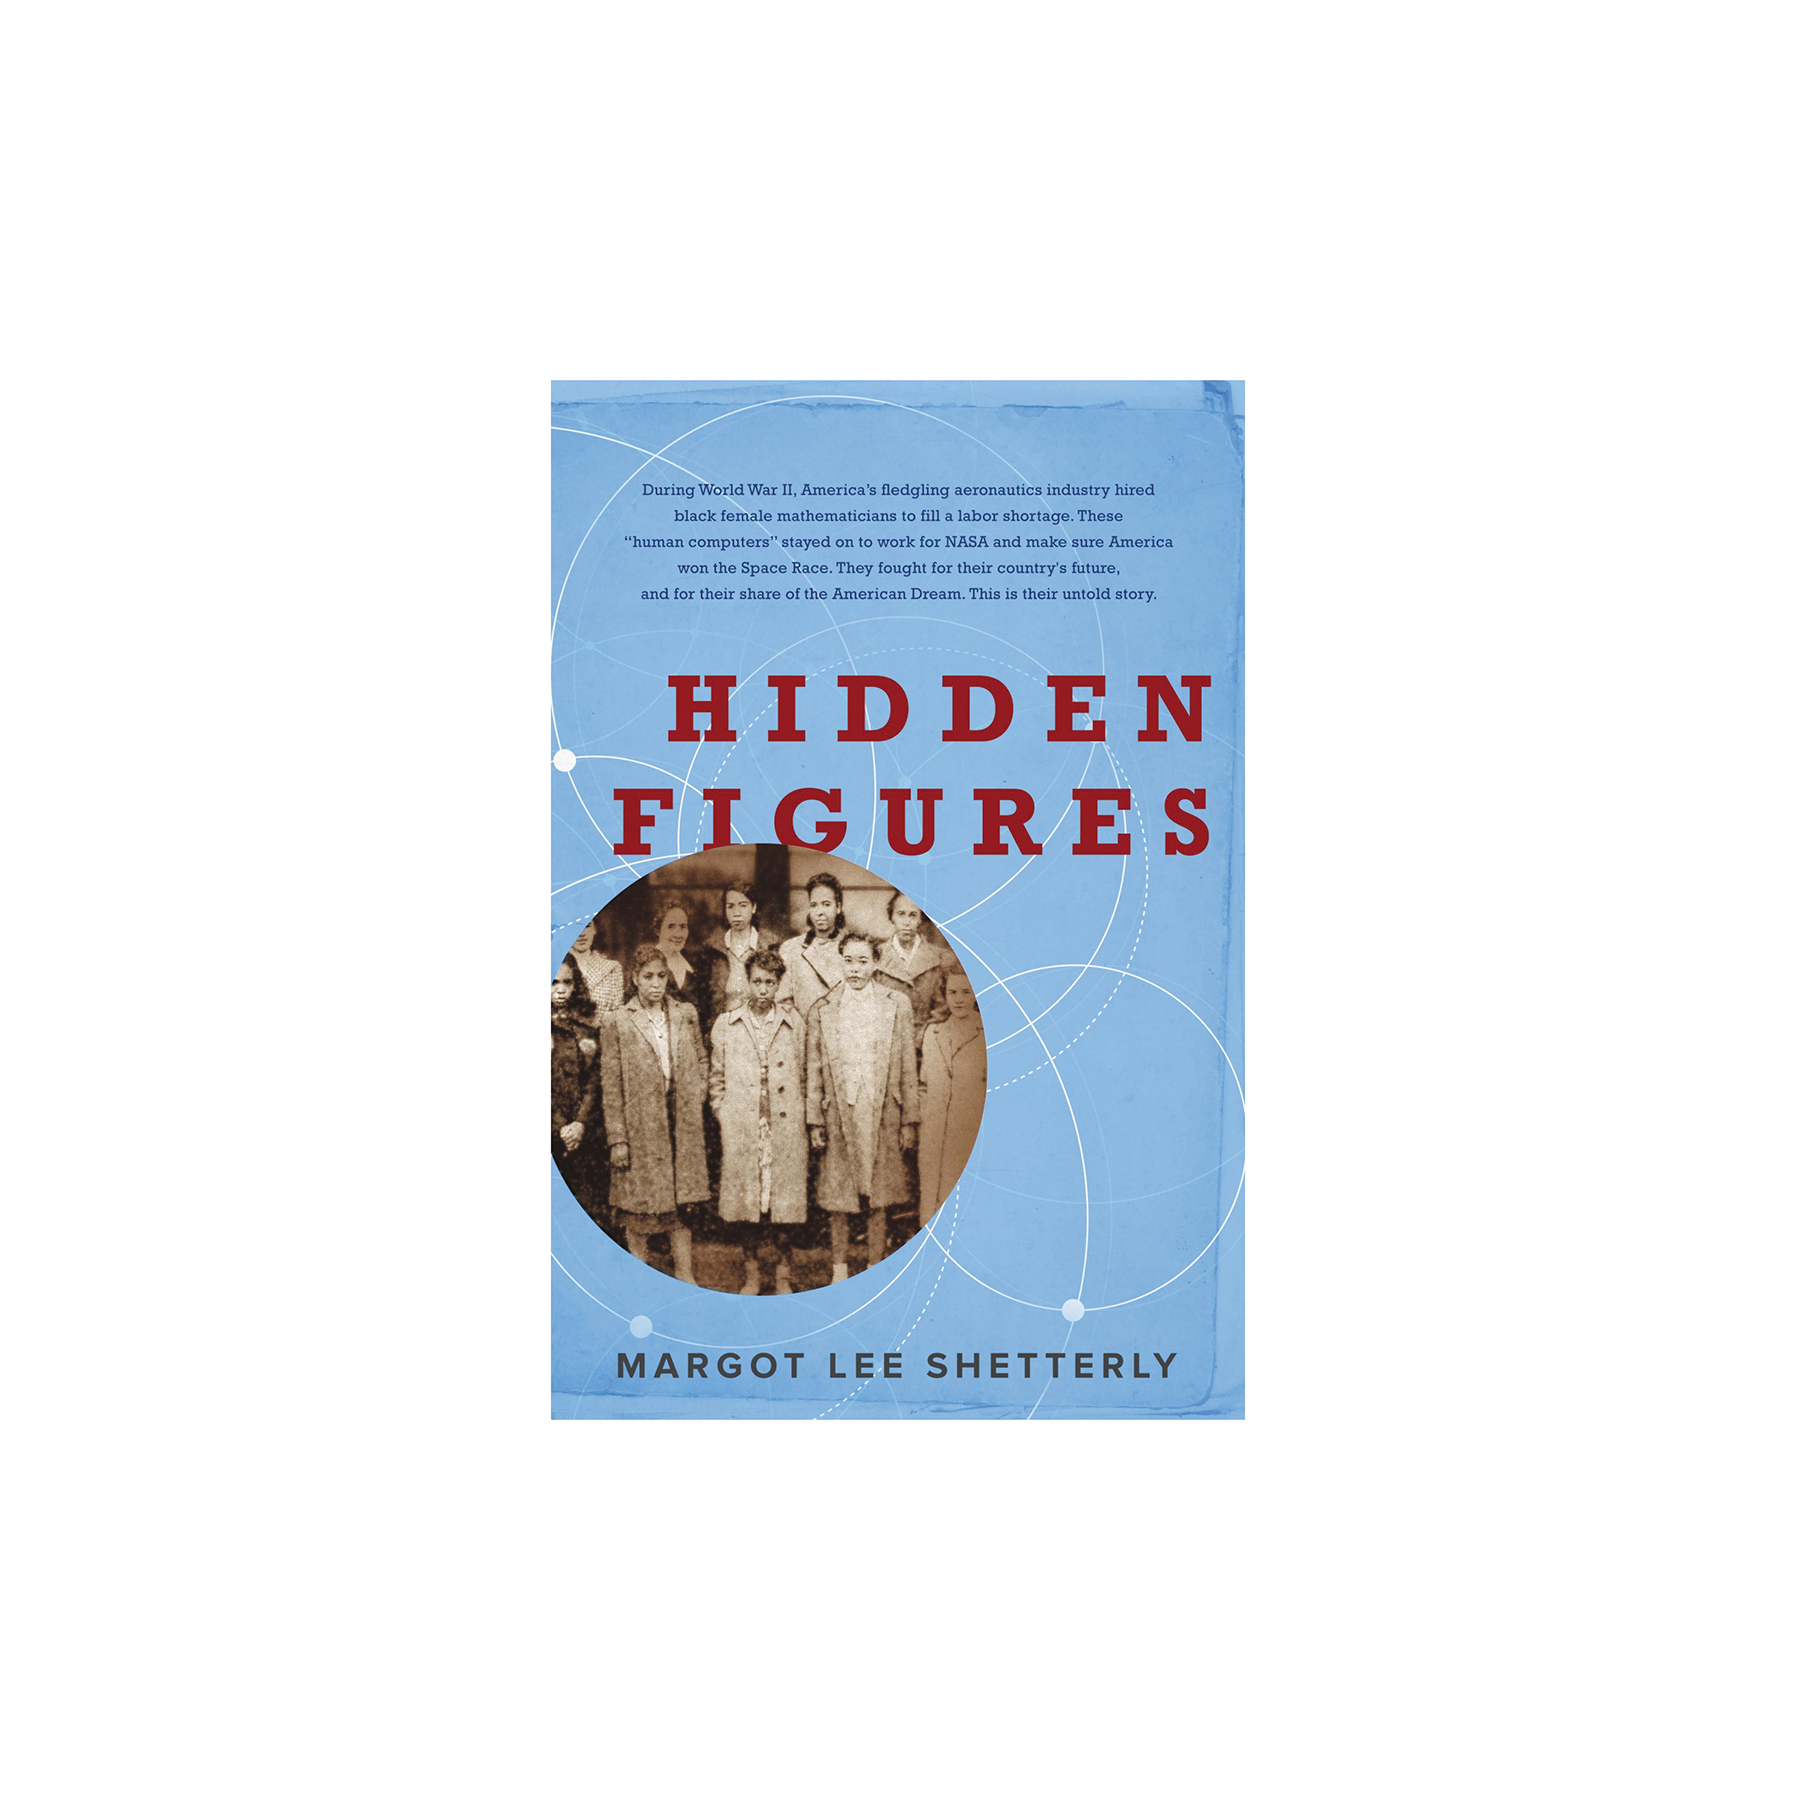 Hidden Figures, by Margot Lee Shetterly